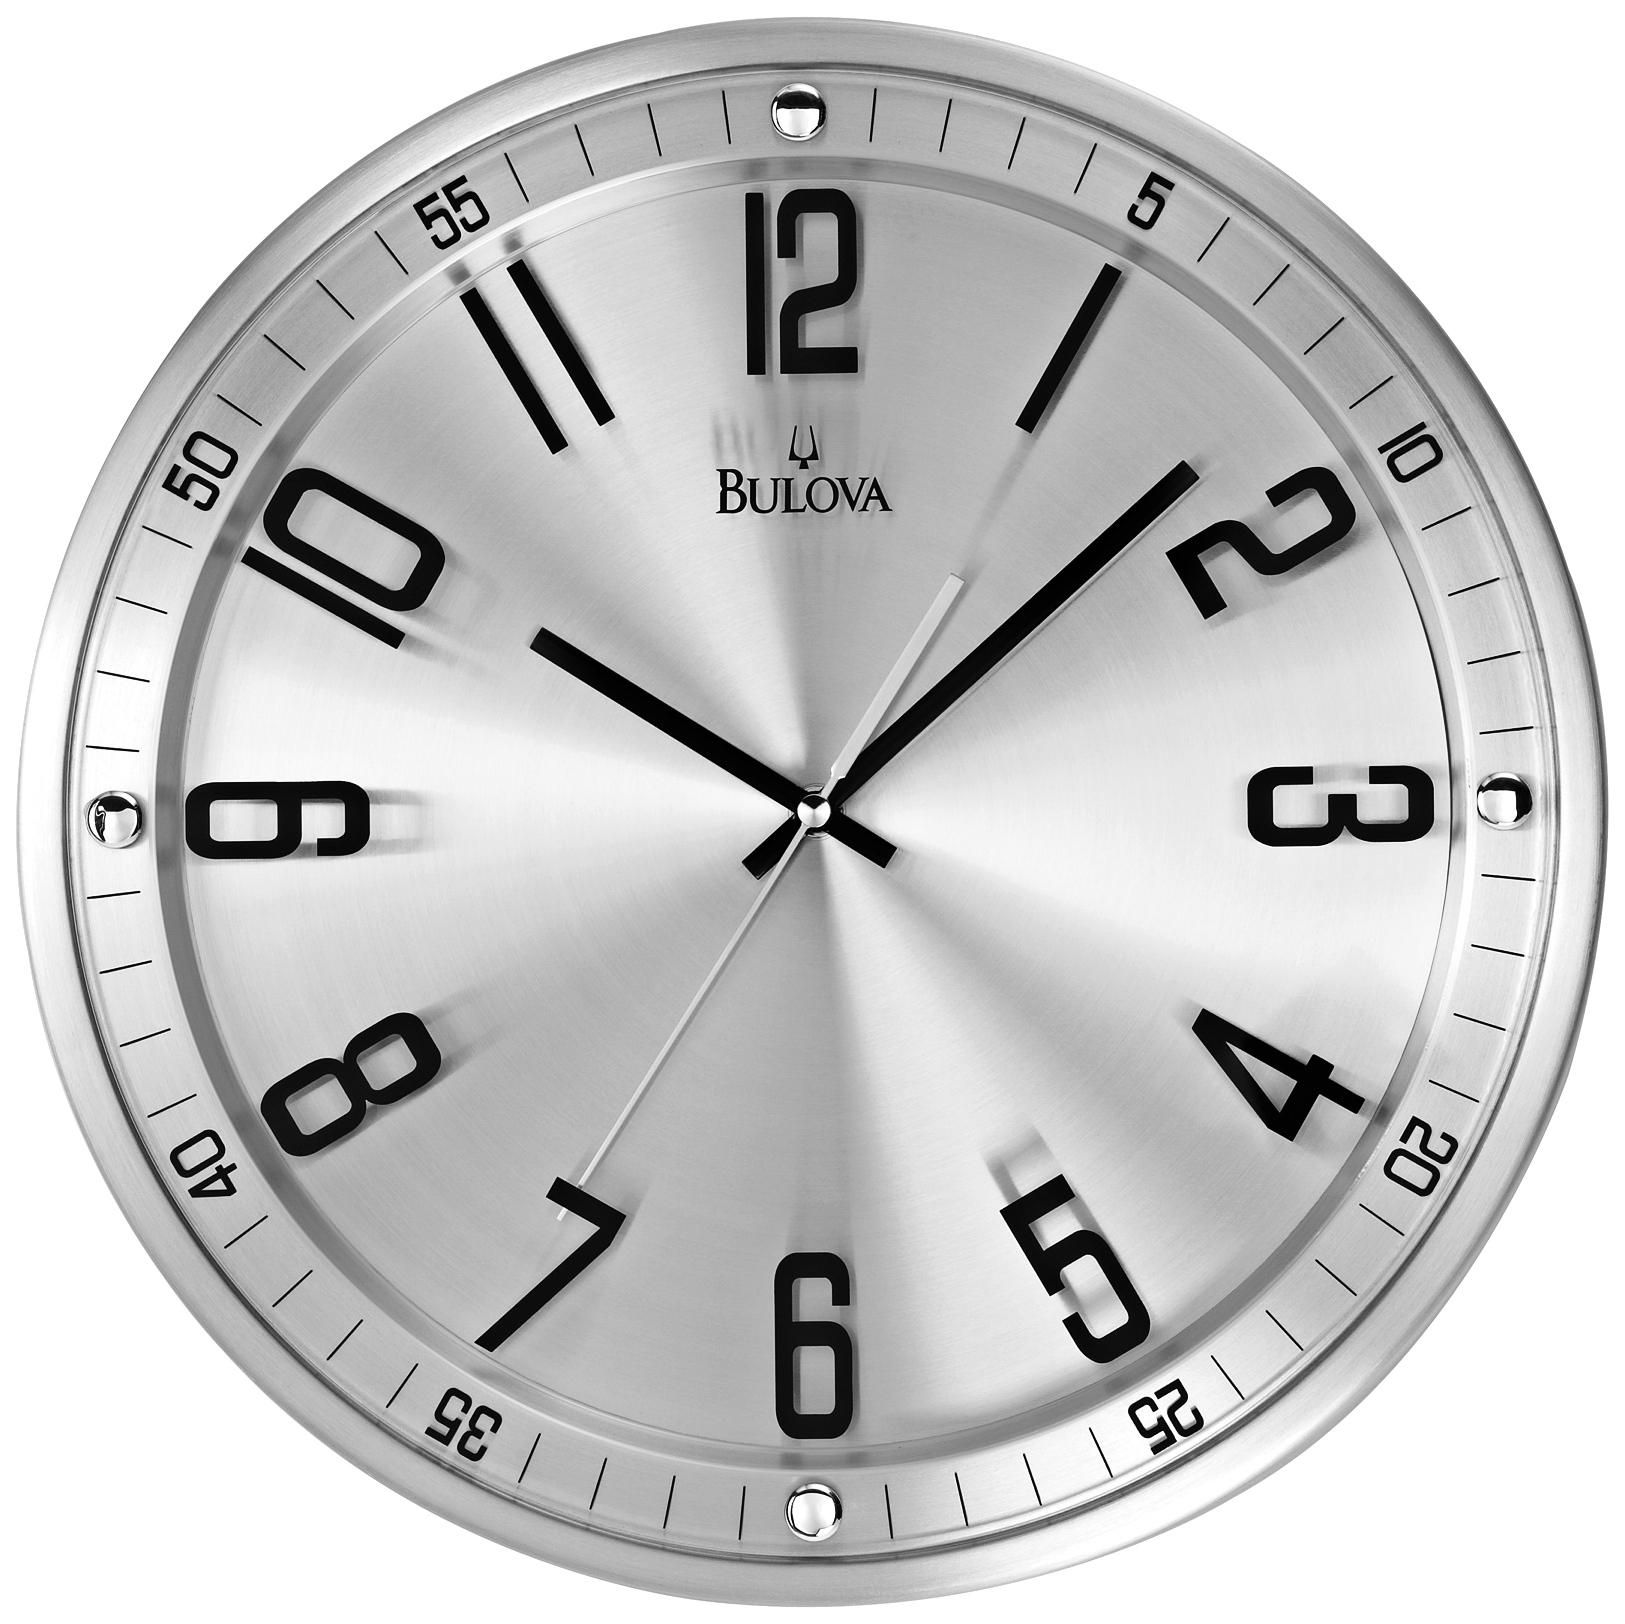 Bulova Silhouette 13 High Stainless Steel Wall Clock V7798 Lamps Plus Bulova Wall Clock Wall Clock Clock